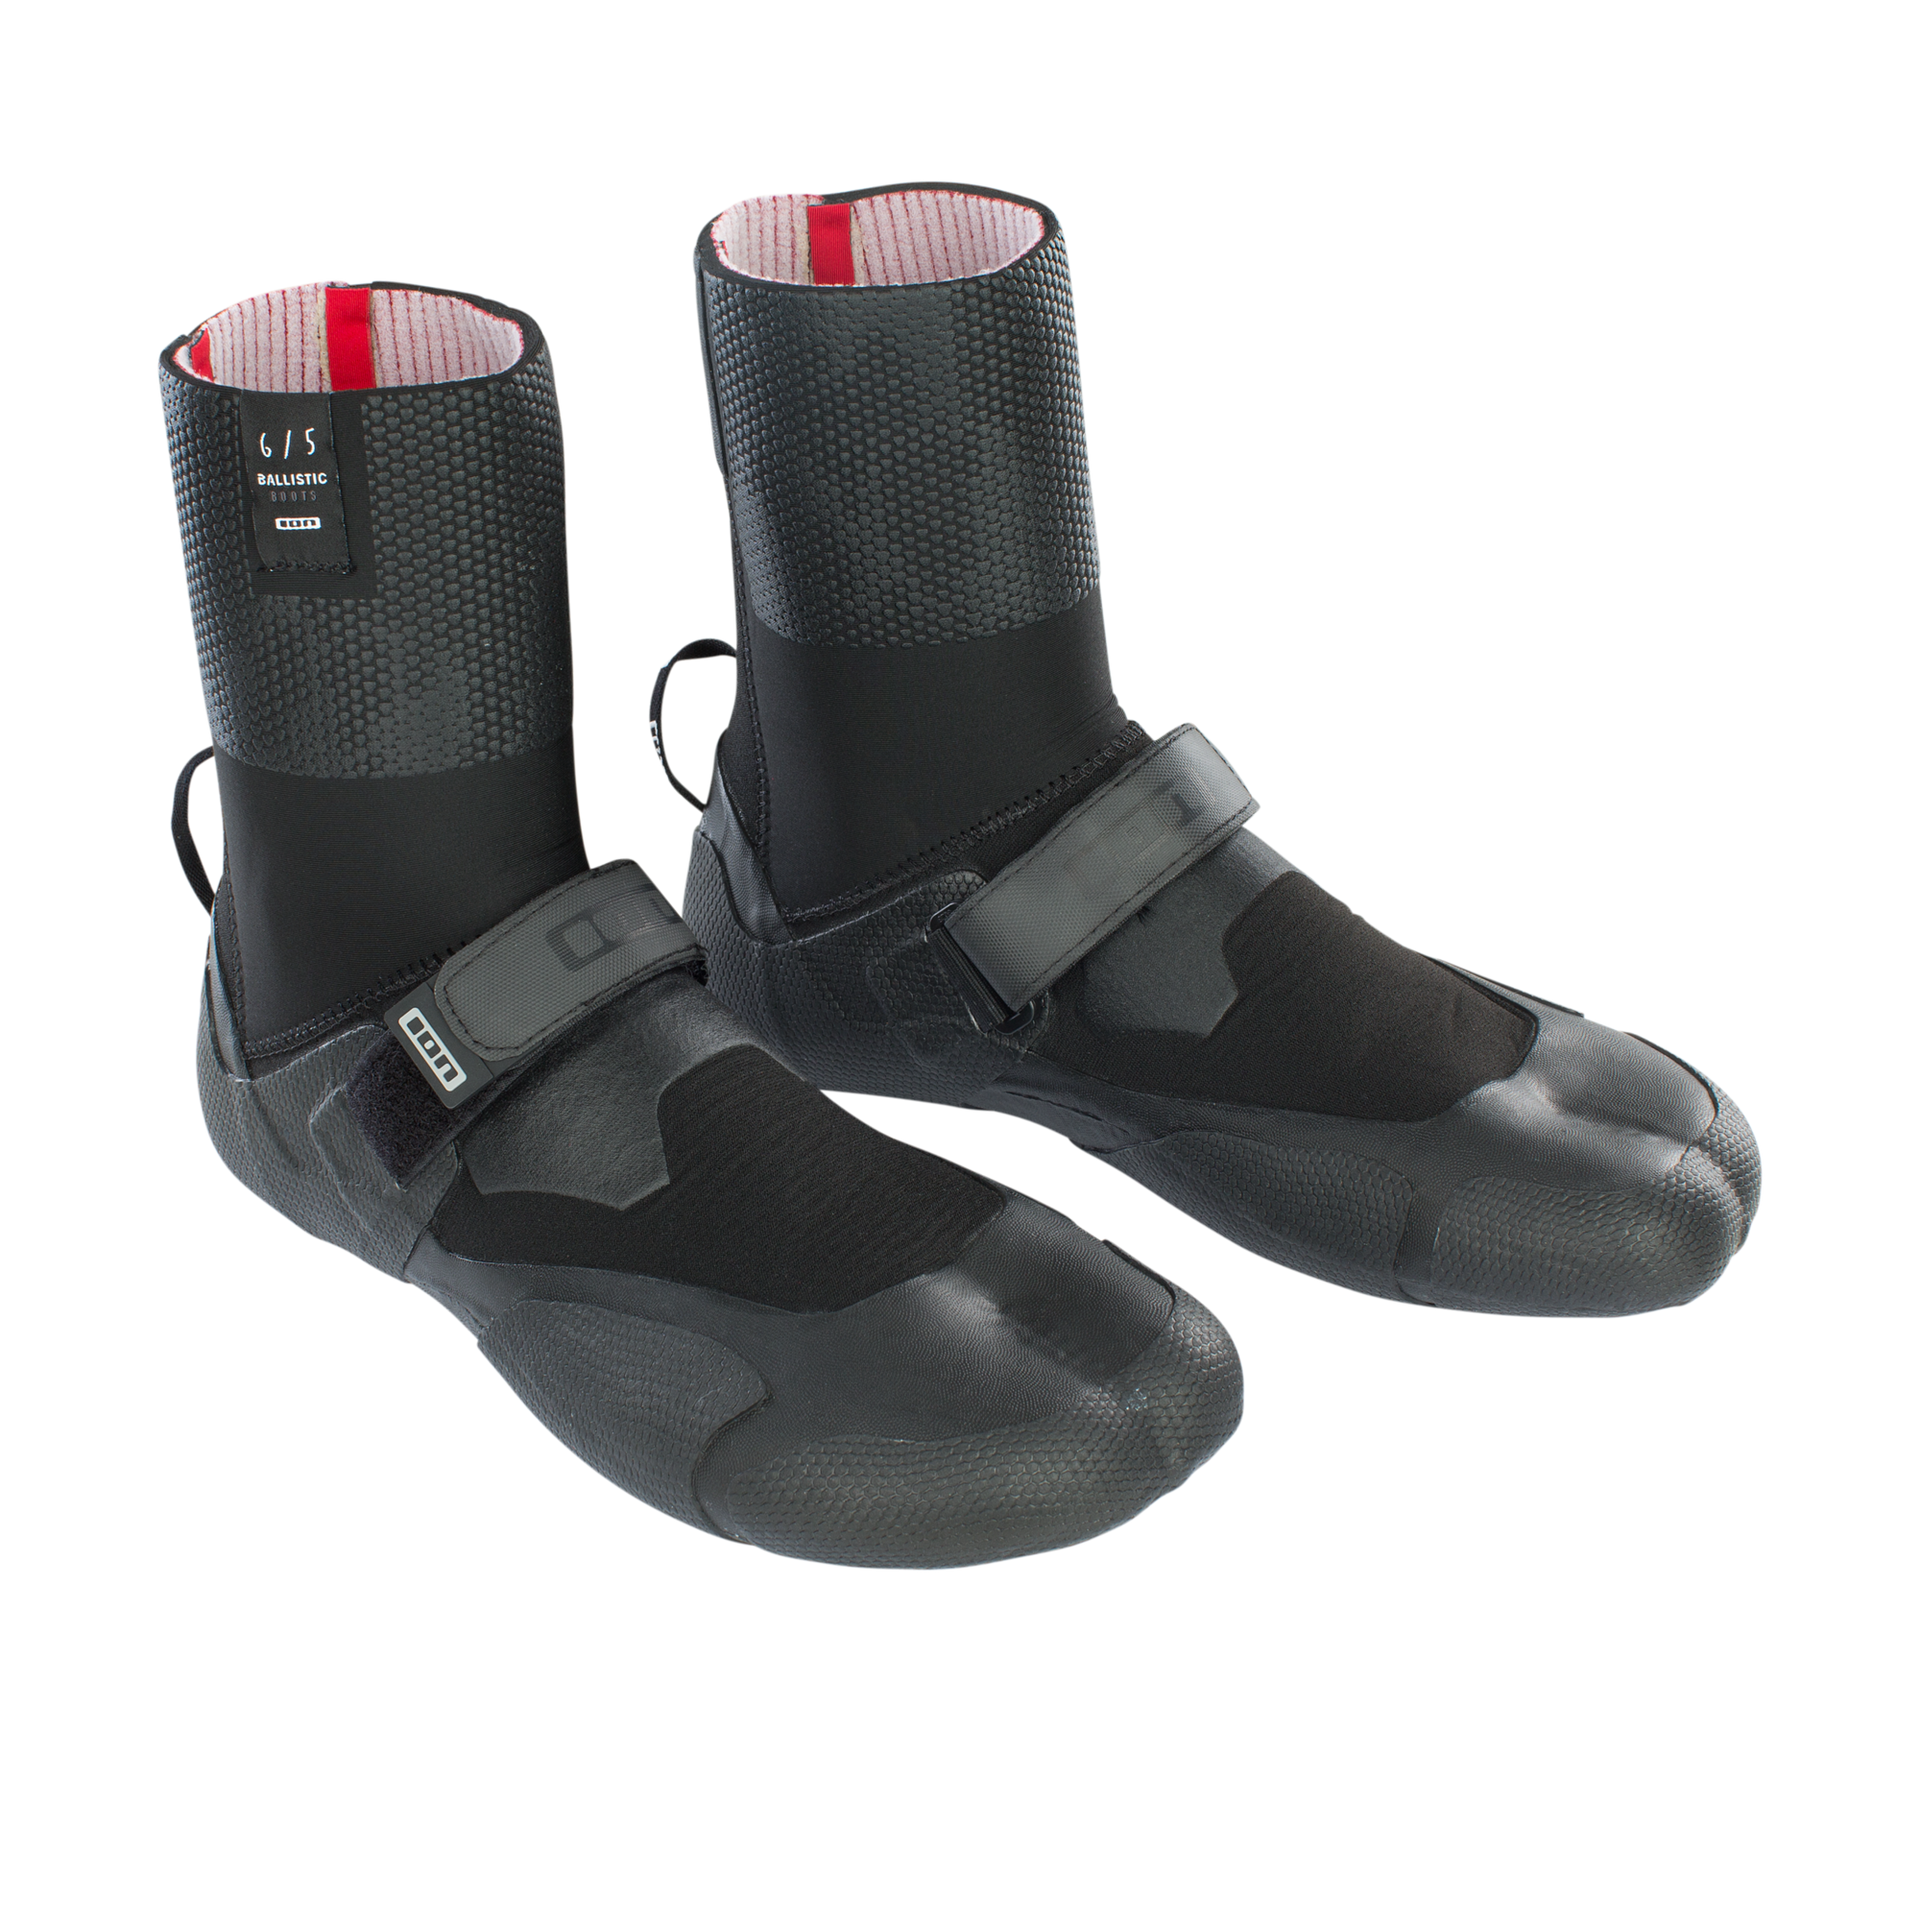 ION SS20 Ballistic Boots 6/5 IS BLACK